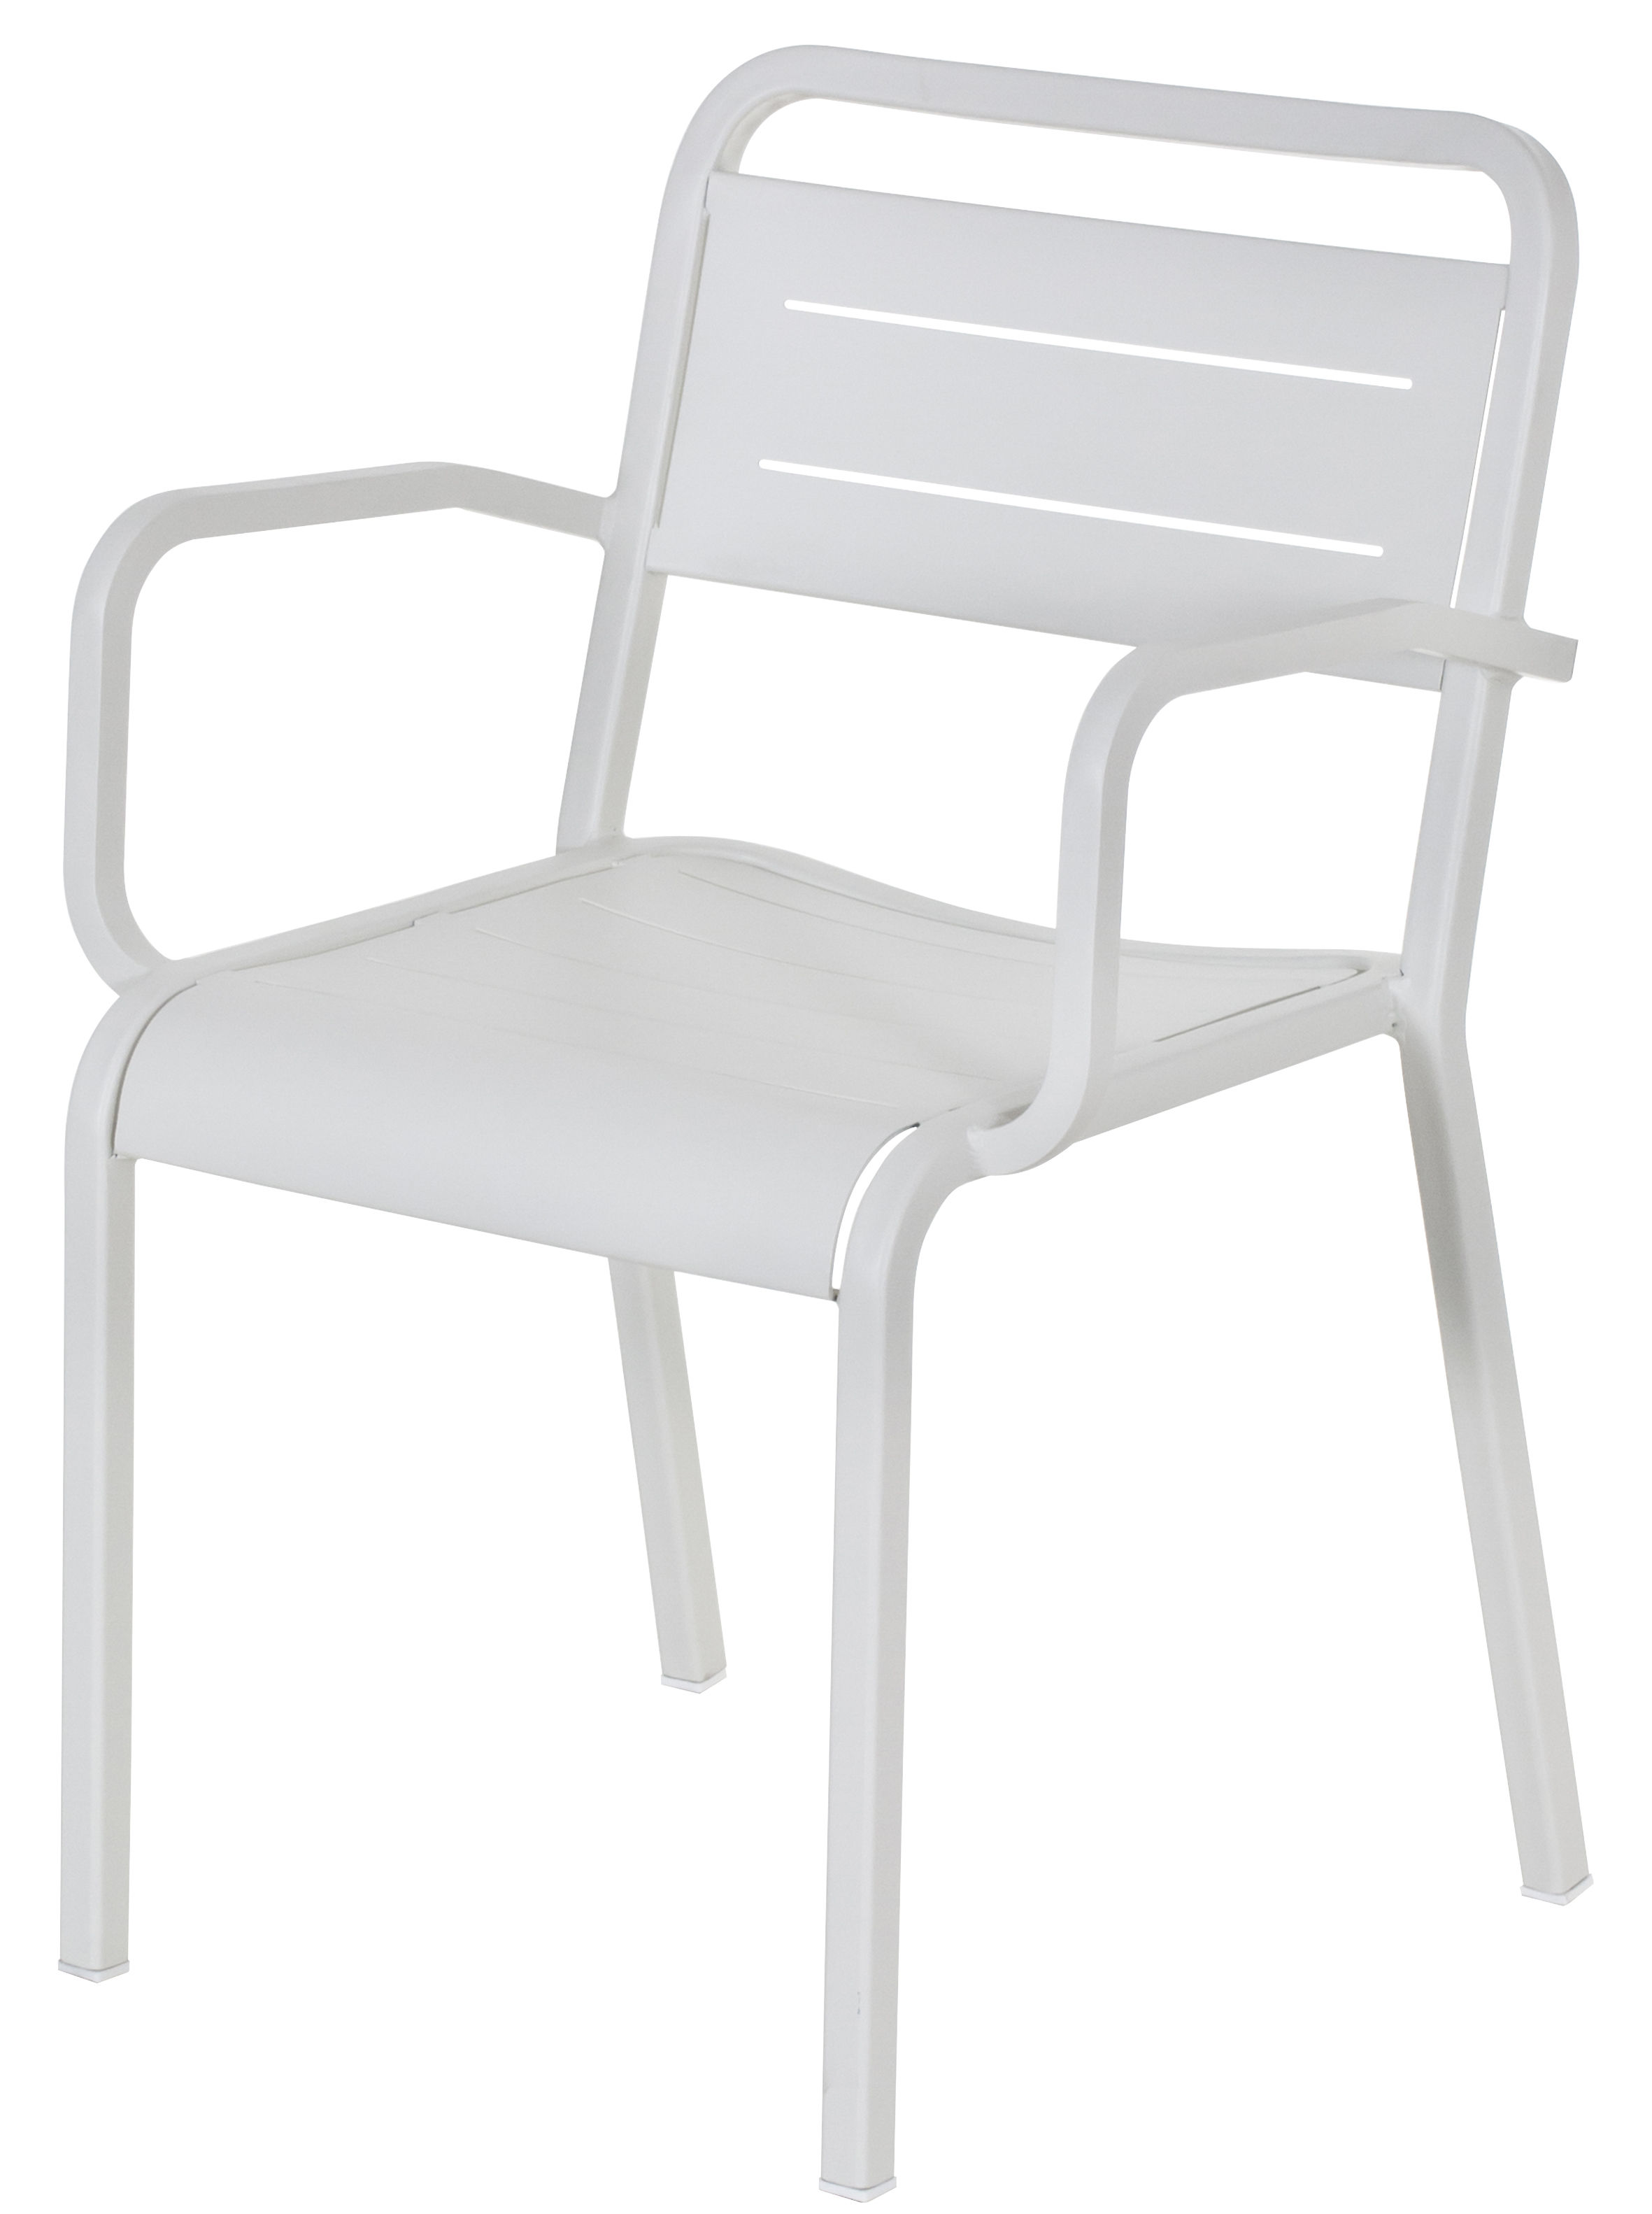 fauteuil empilable urban m tal blanc emu made in design. Black Bedroom Furniture Sets. Home Design Ideas